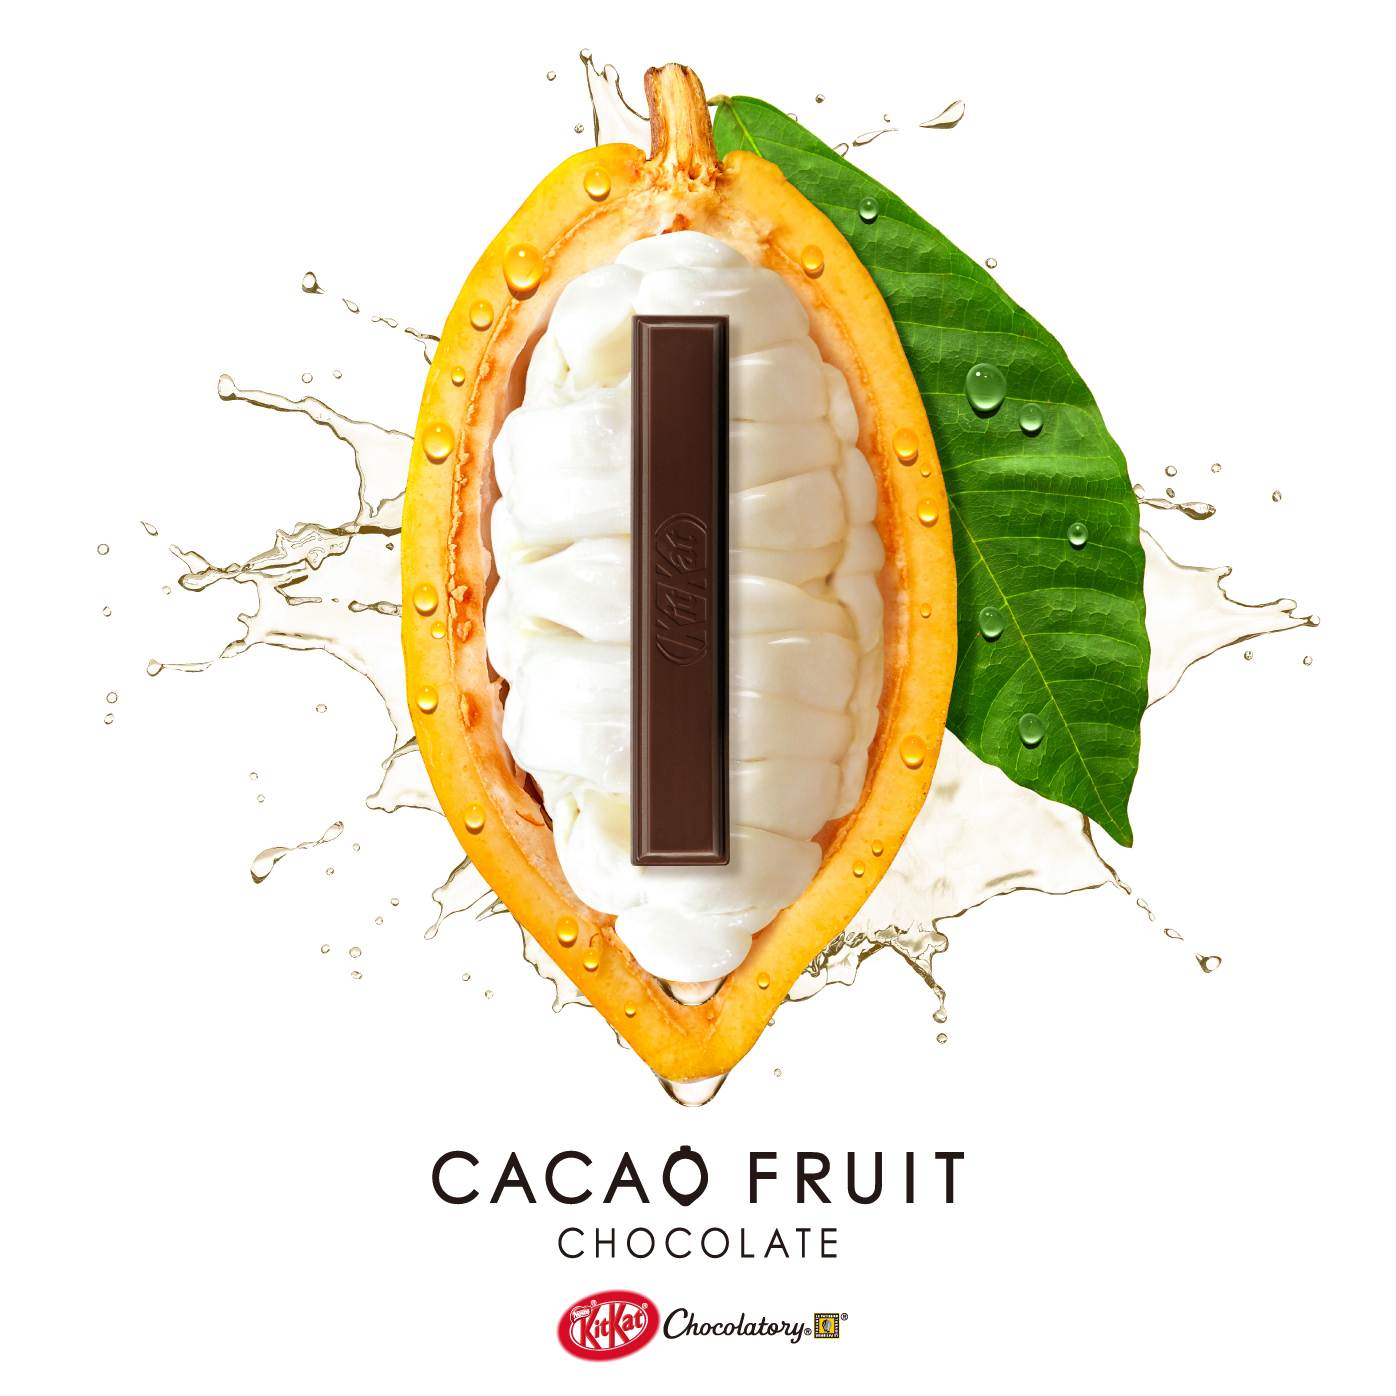 nestle-cacao-fruit-chocolate-2-XL-BLOG0719.jpg